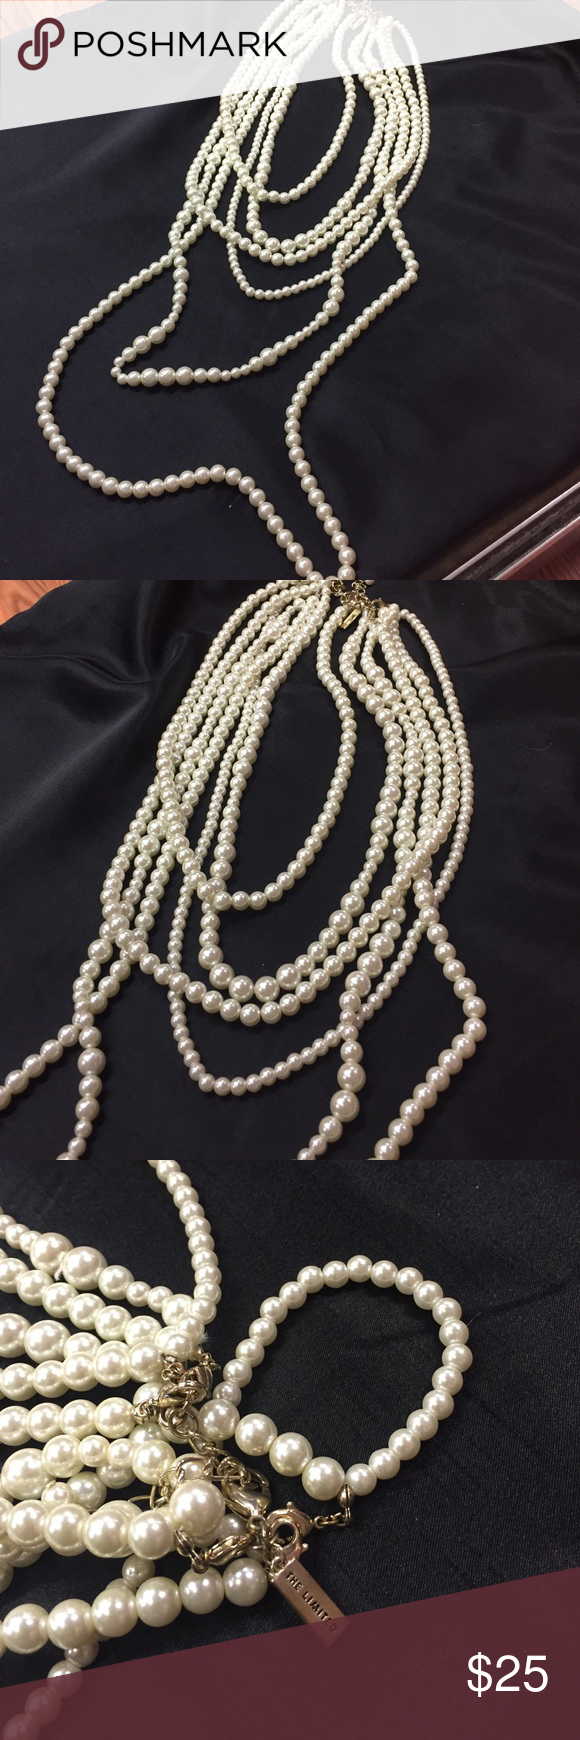 Limited Pearl strands. Heavy. Good quality The Limited Jewelry Necklaces